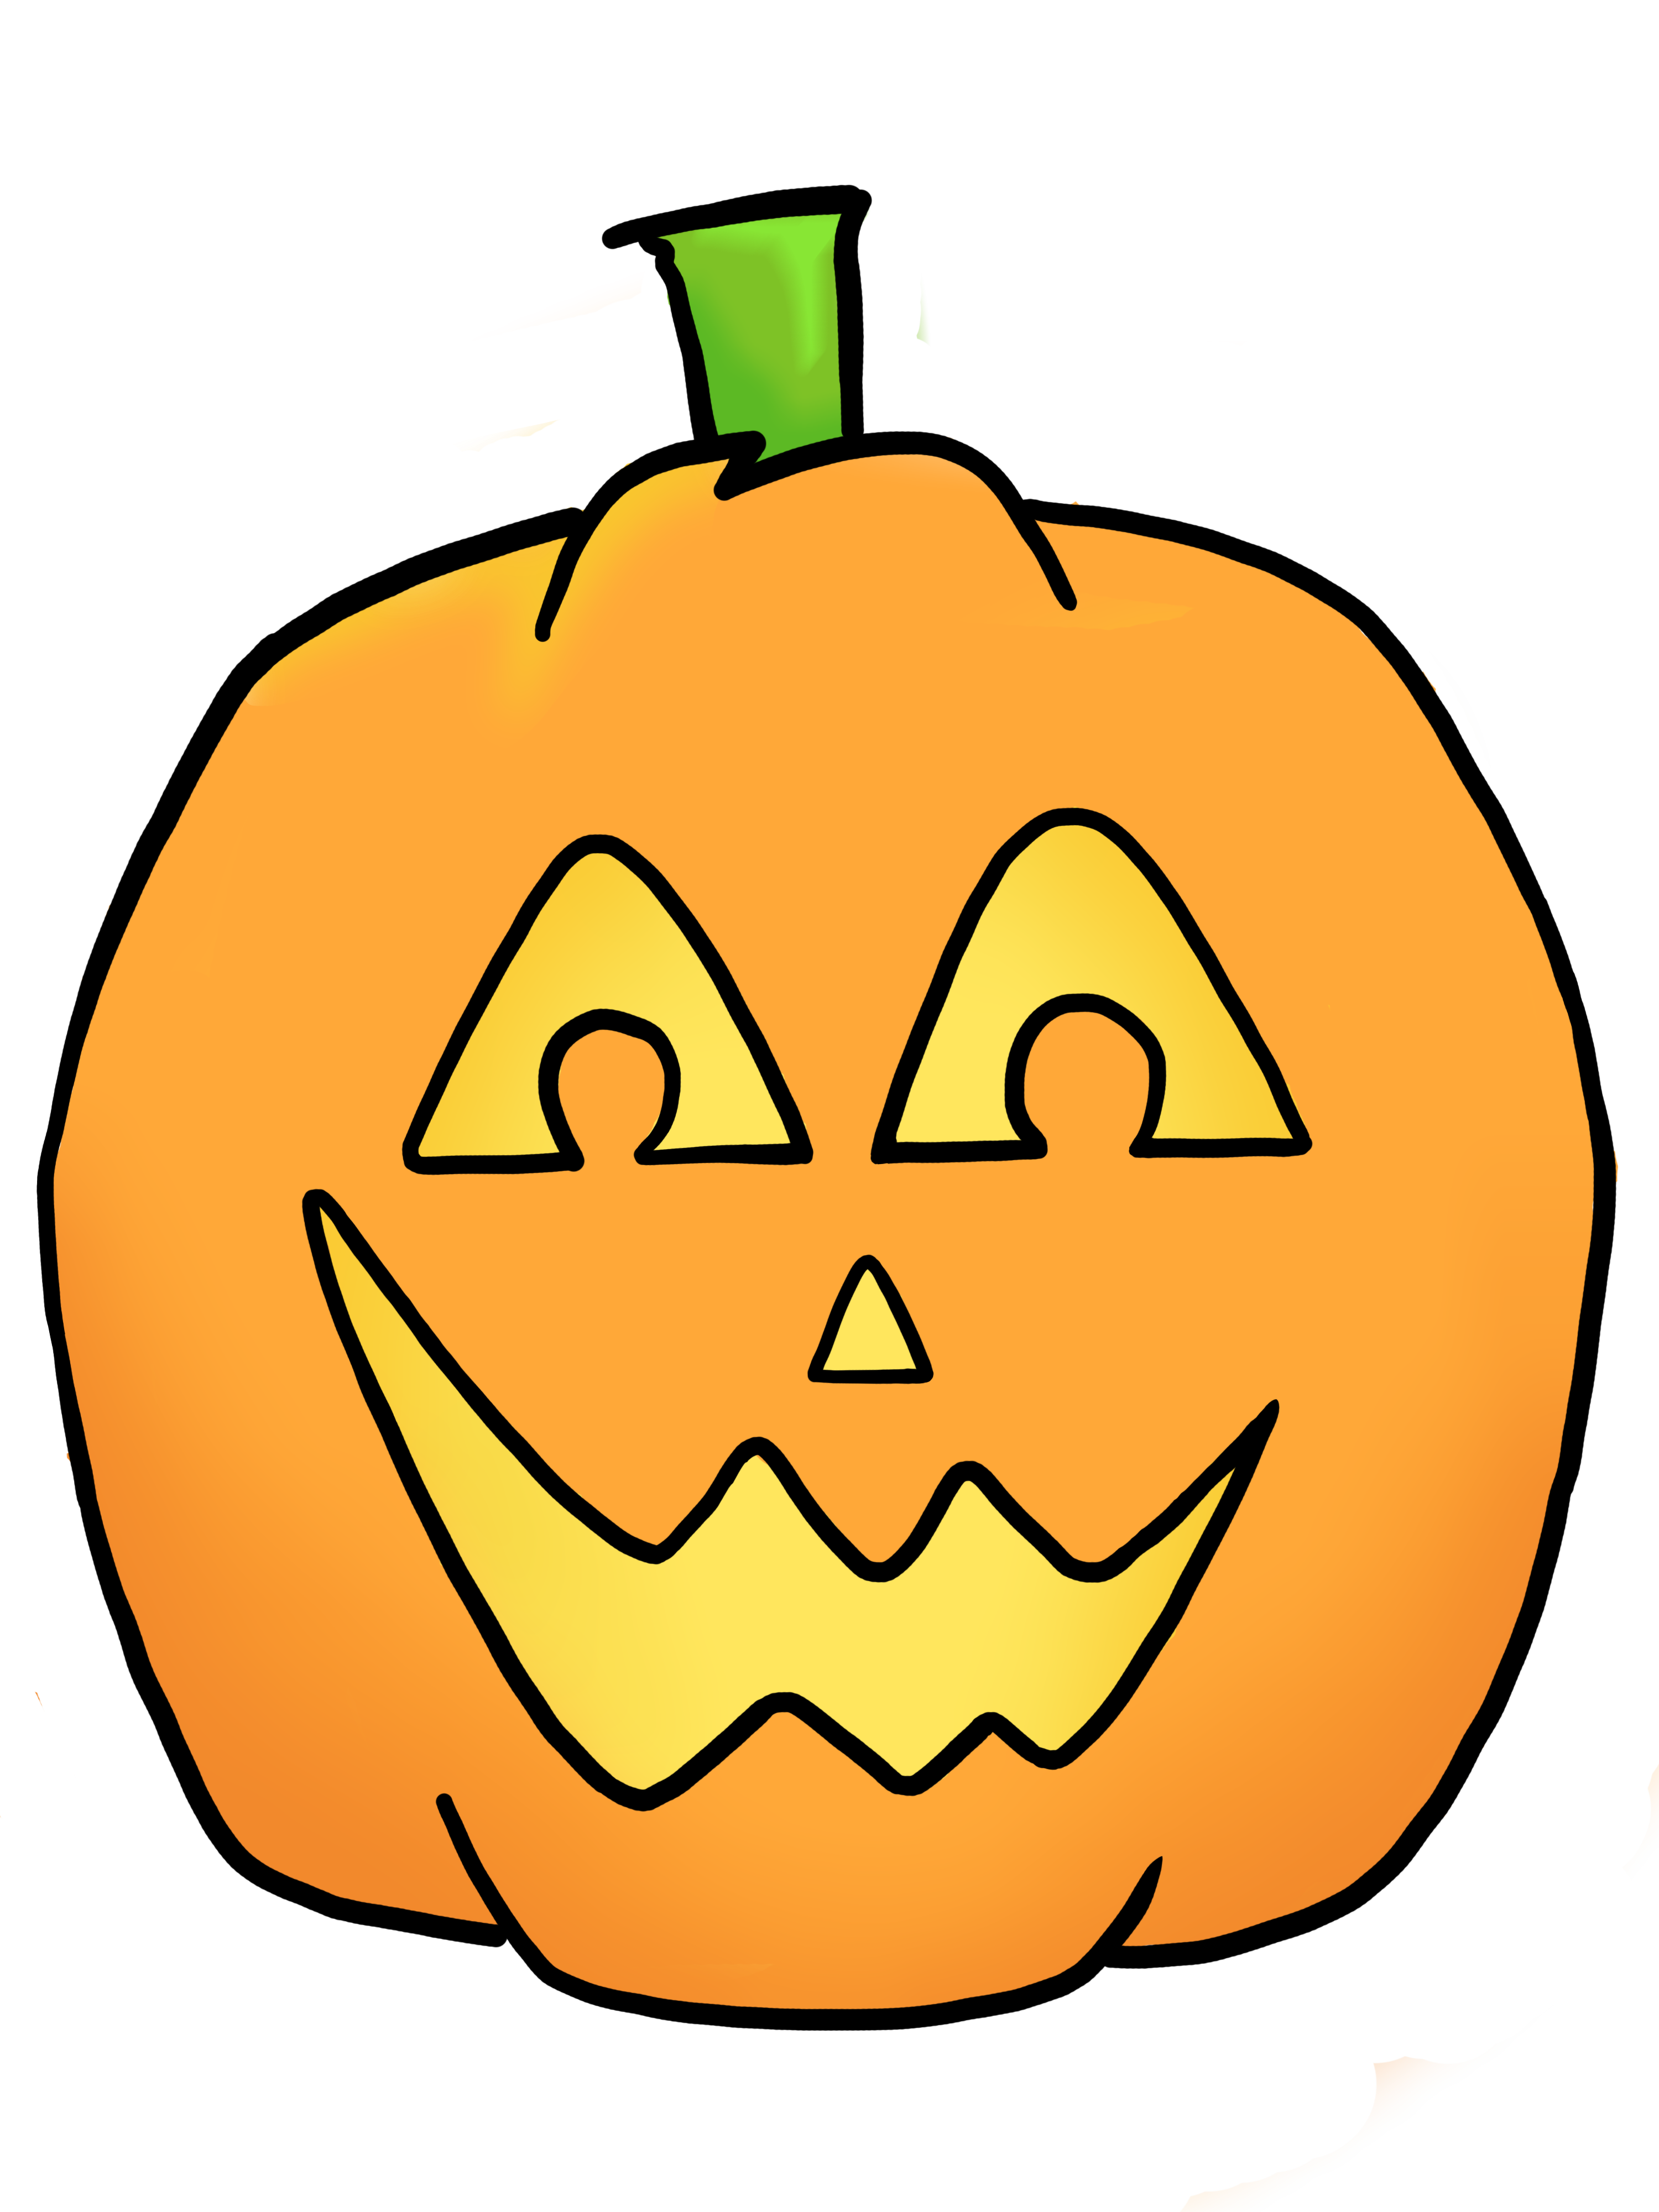 happy jack o lantern clipart-happy jack o lantern clipart-11